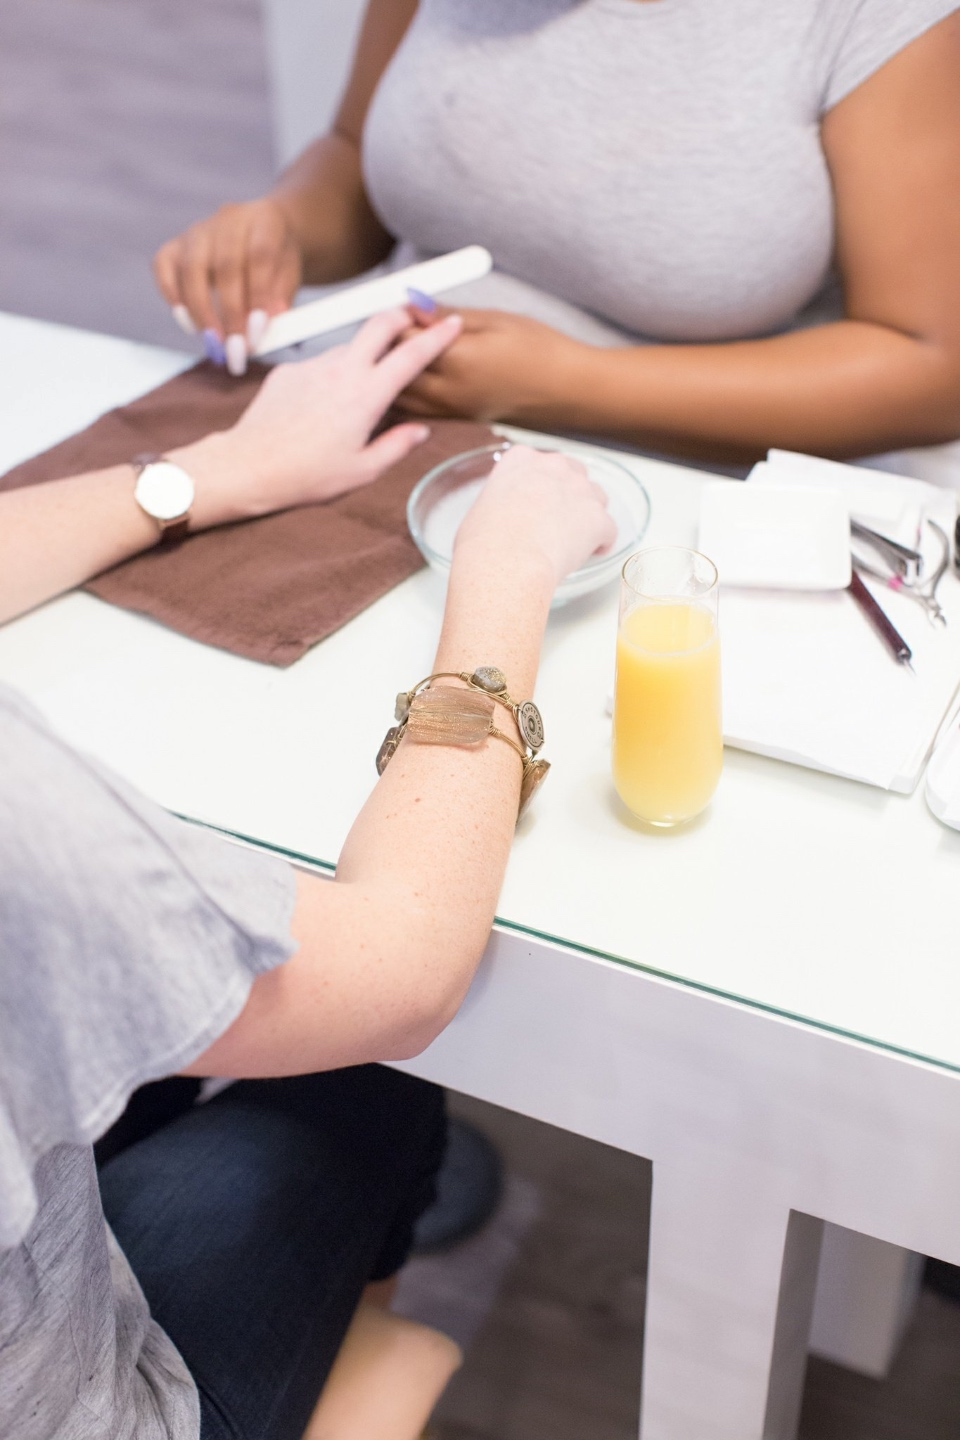 Girls Day Out In Raleigh by popular NC lifestyle blog, I'm Fixin' To: image of a woman getting her nails done.